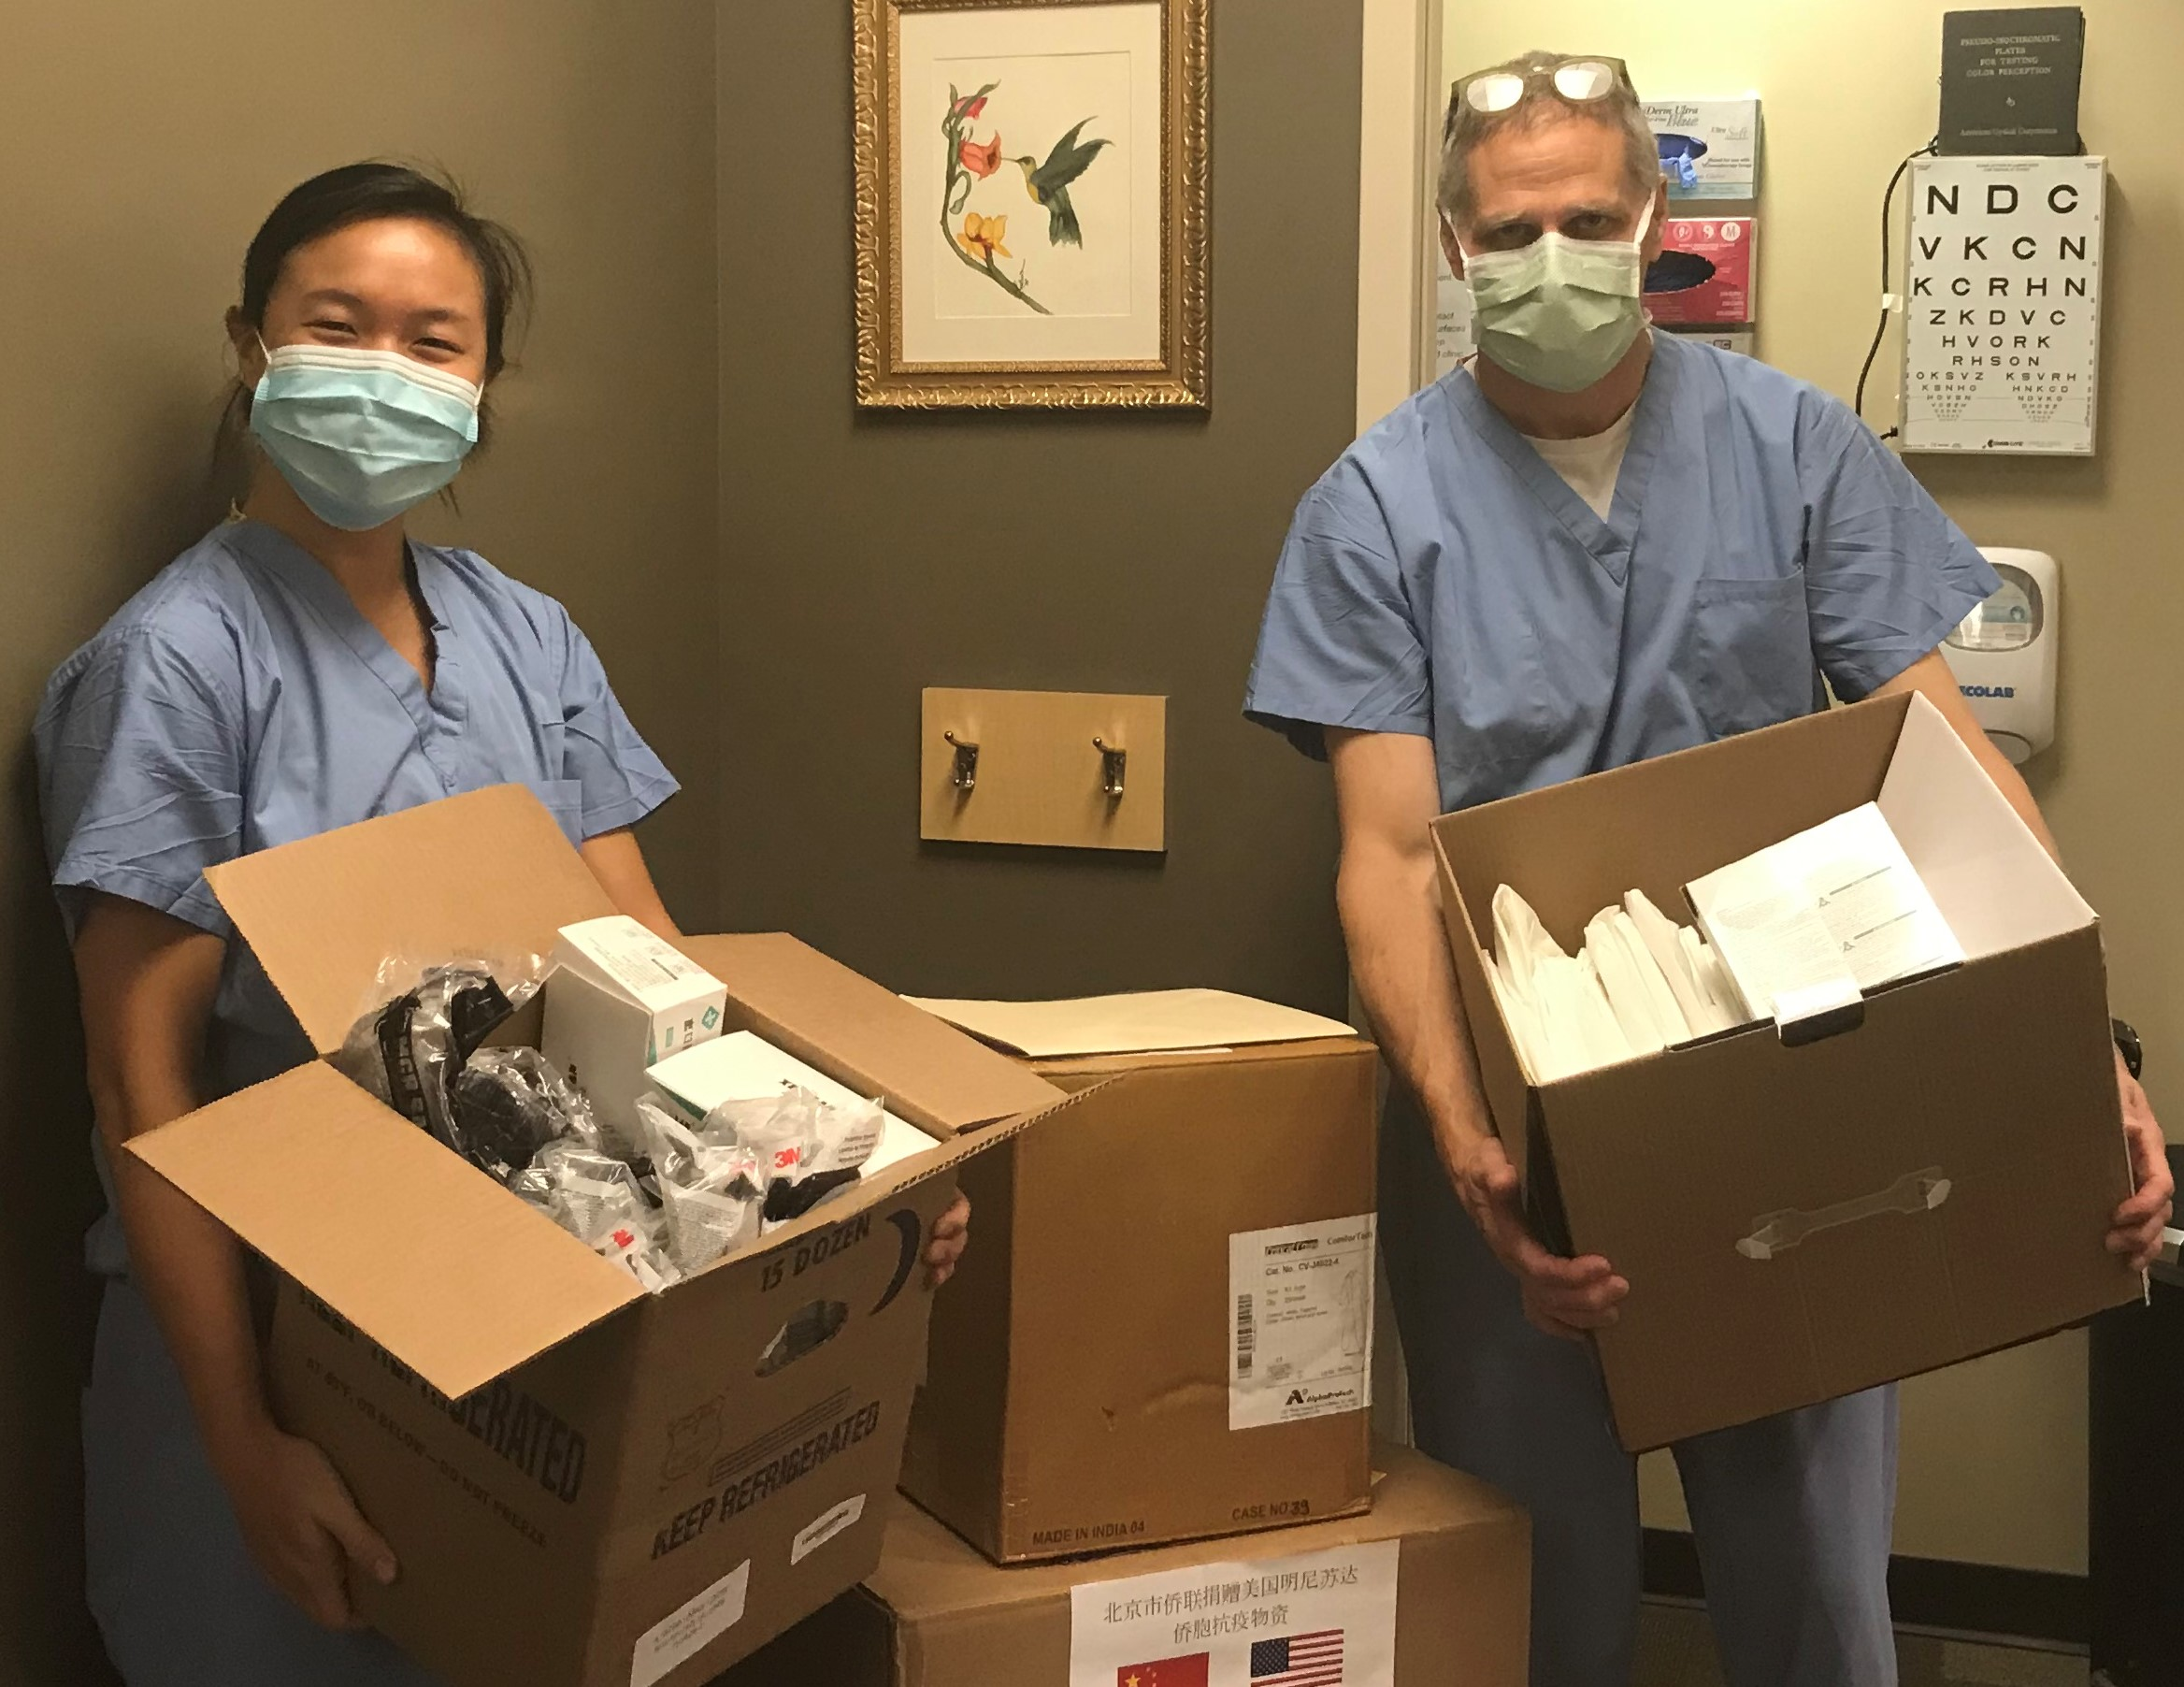 Dr. Jenny Zhang and Dr. Mike Mercer